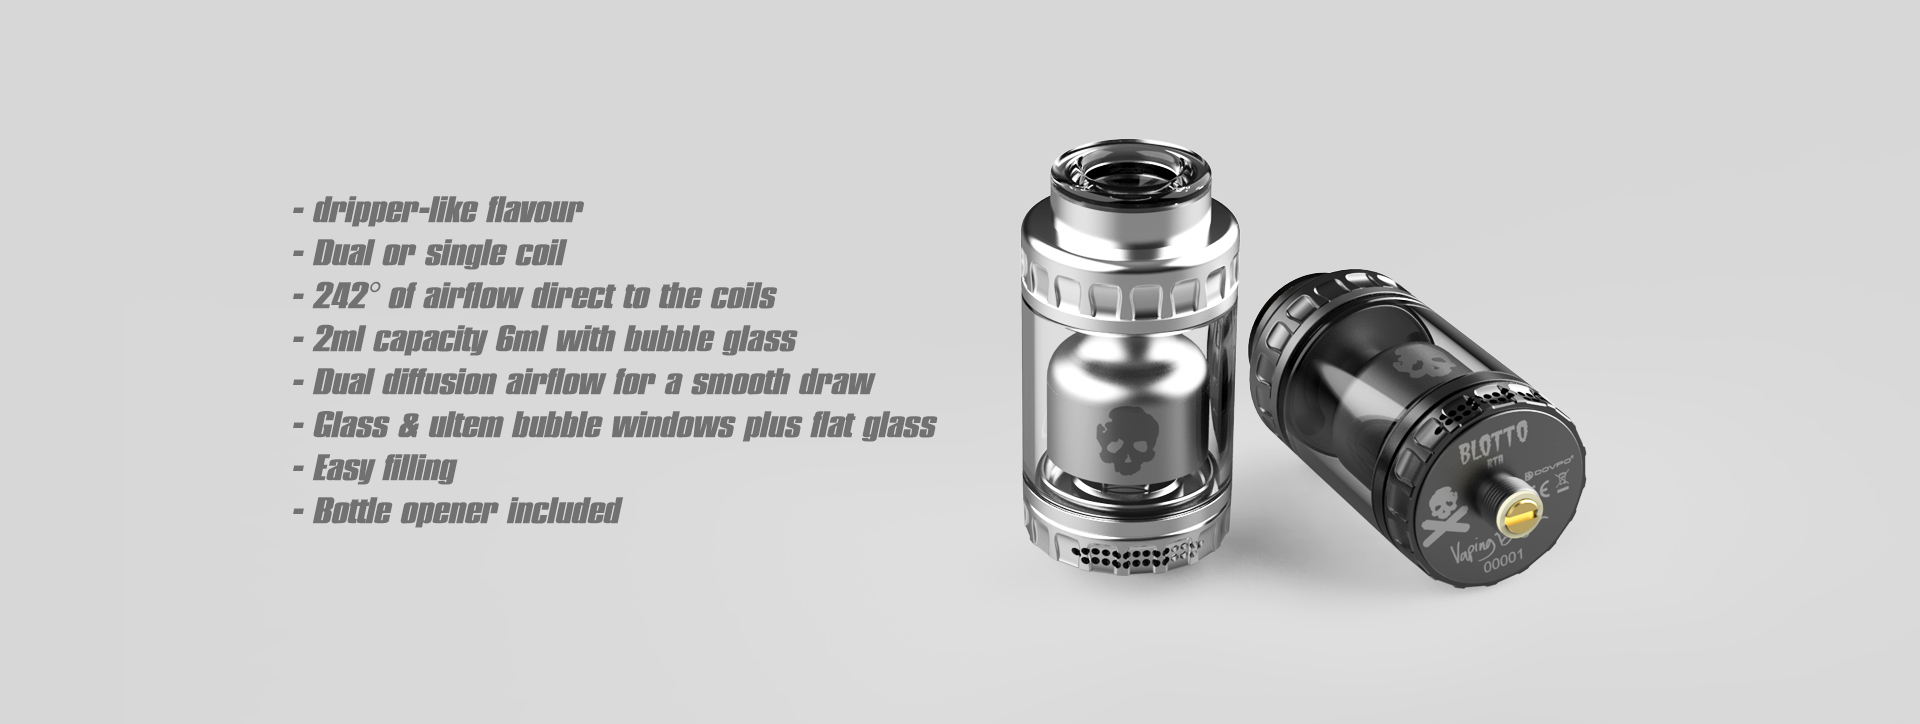 Blotto RTA Features